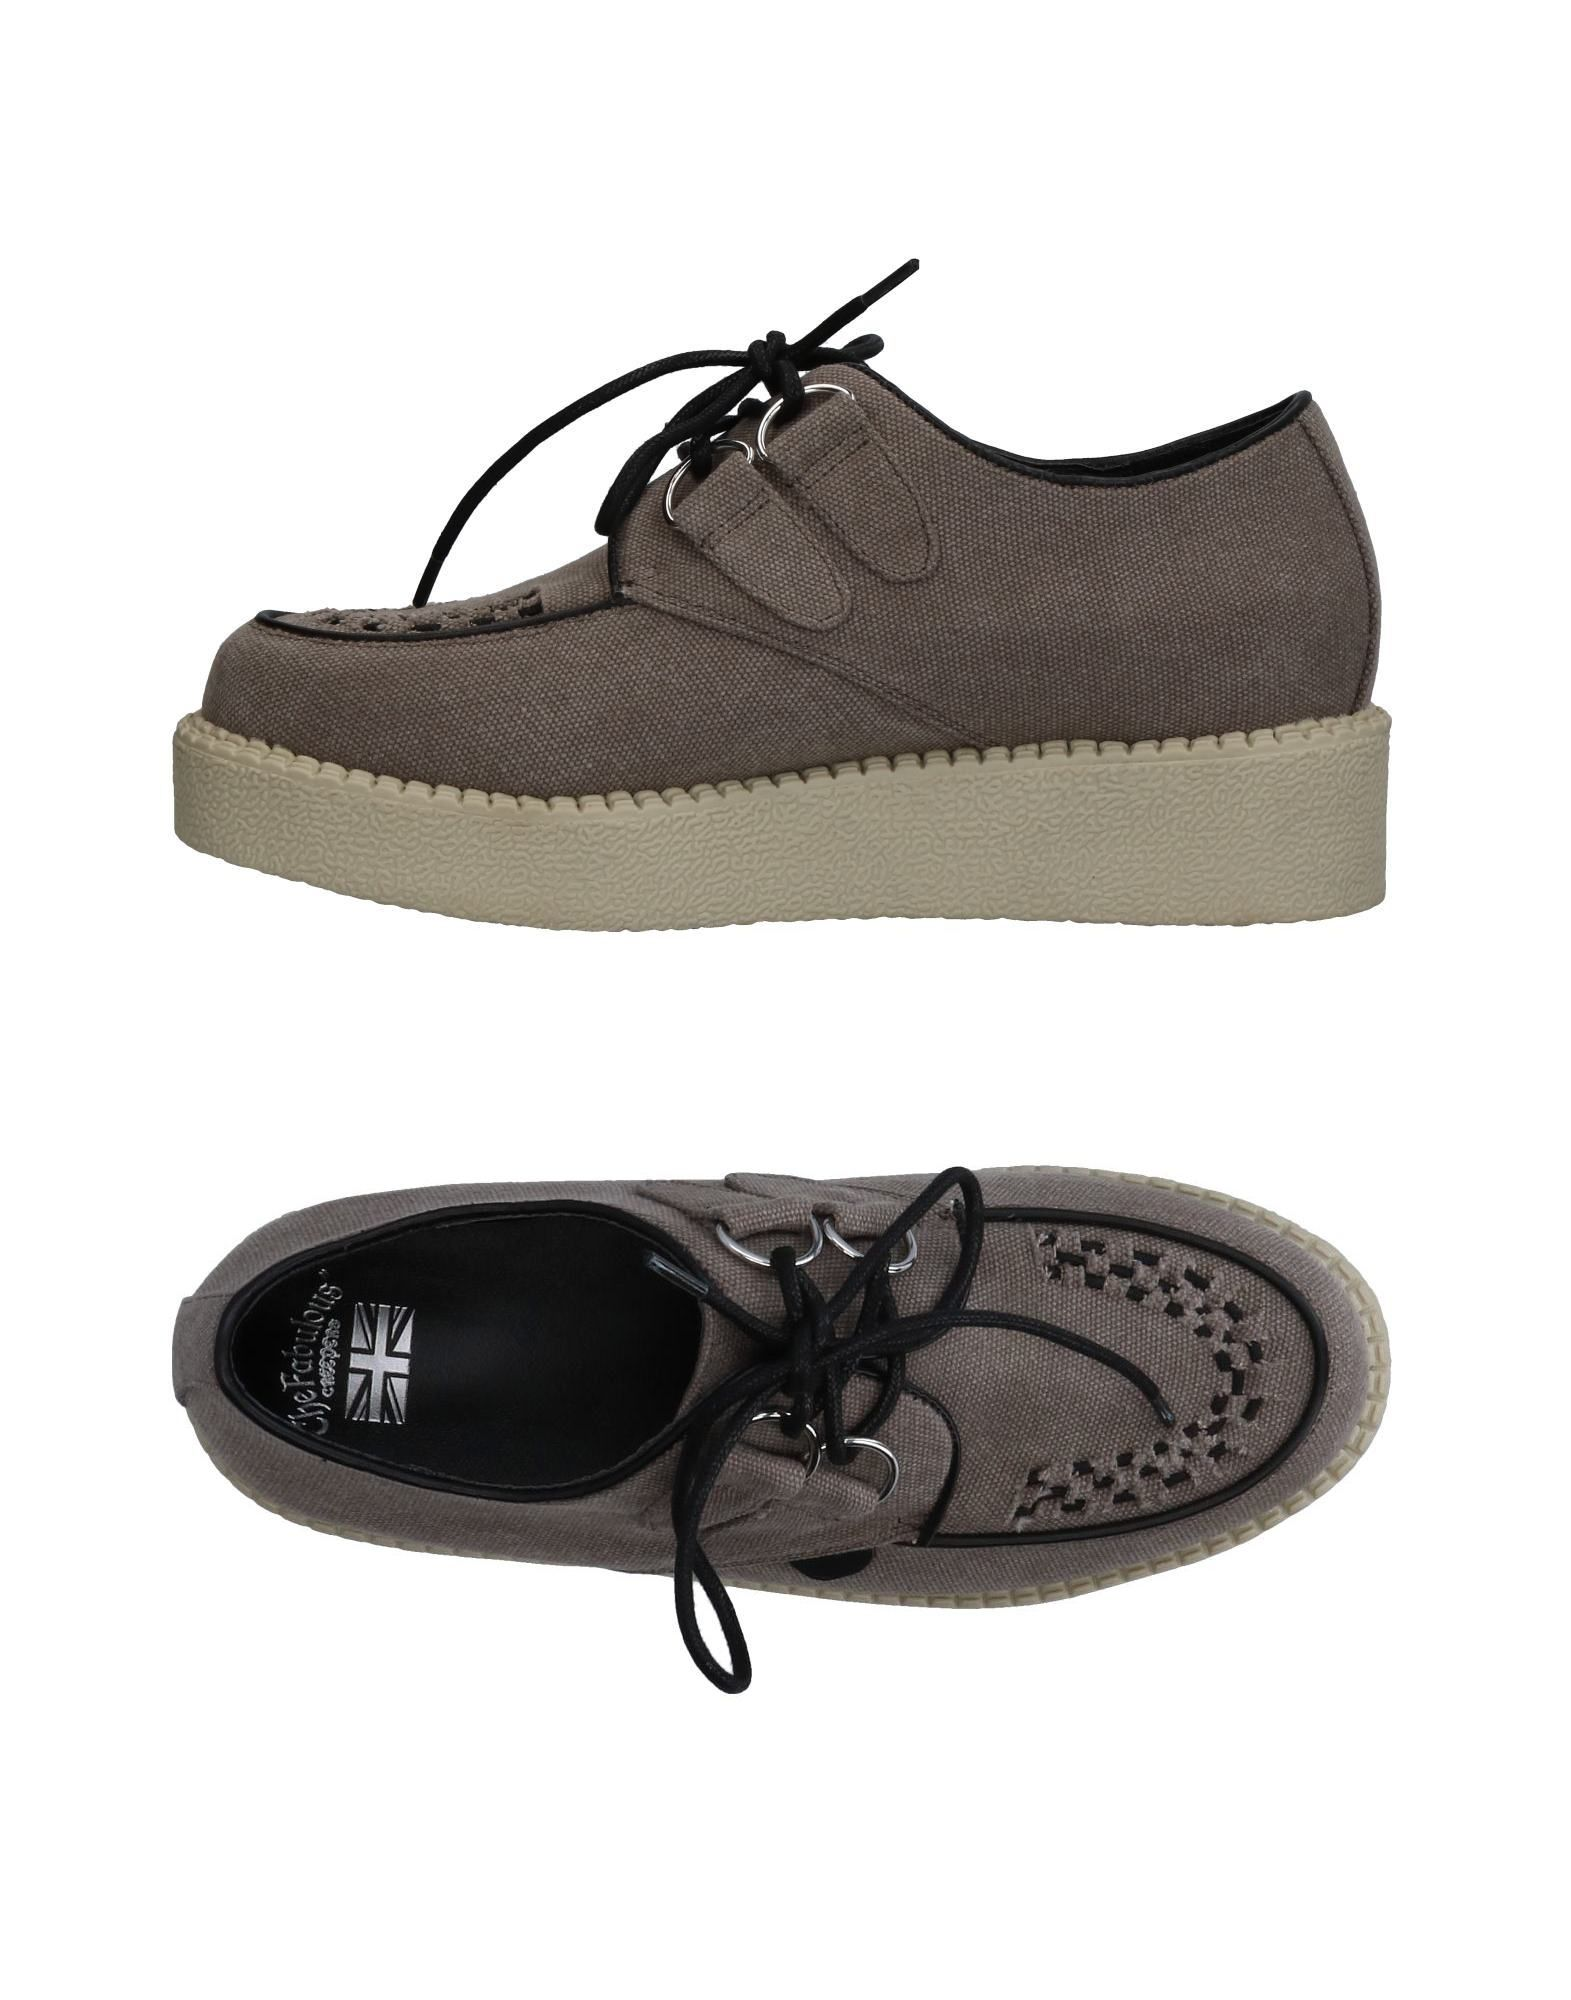 Chaussures À Lacets The Fabulous  Creepers Femme - Chaussures À Lacets The Fabulous  Creepers sur